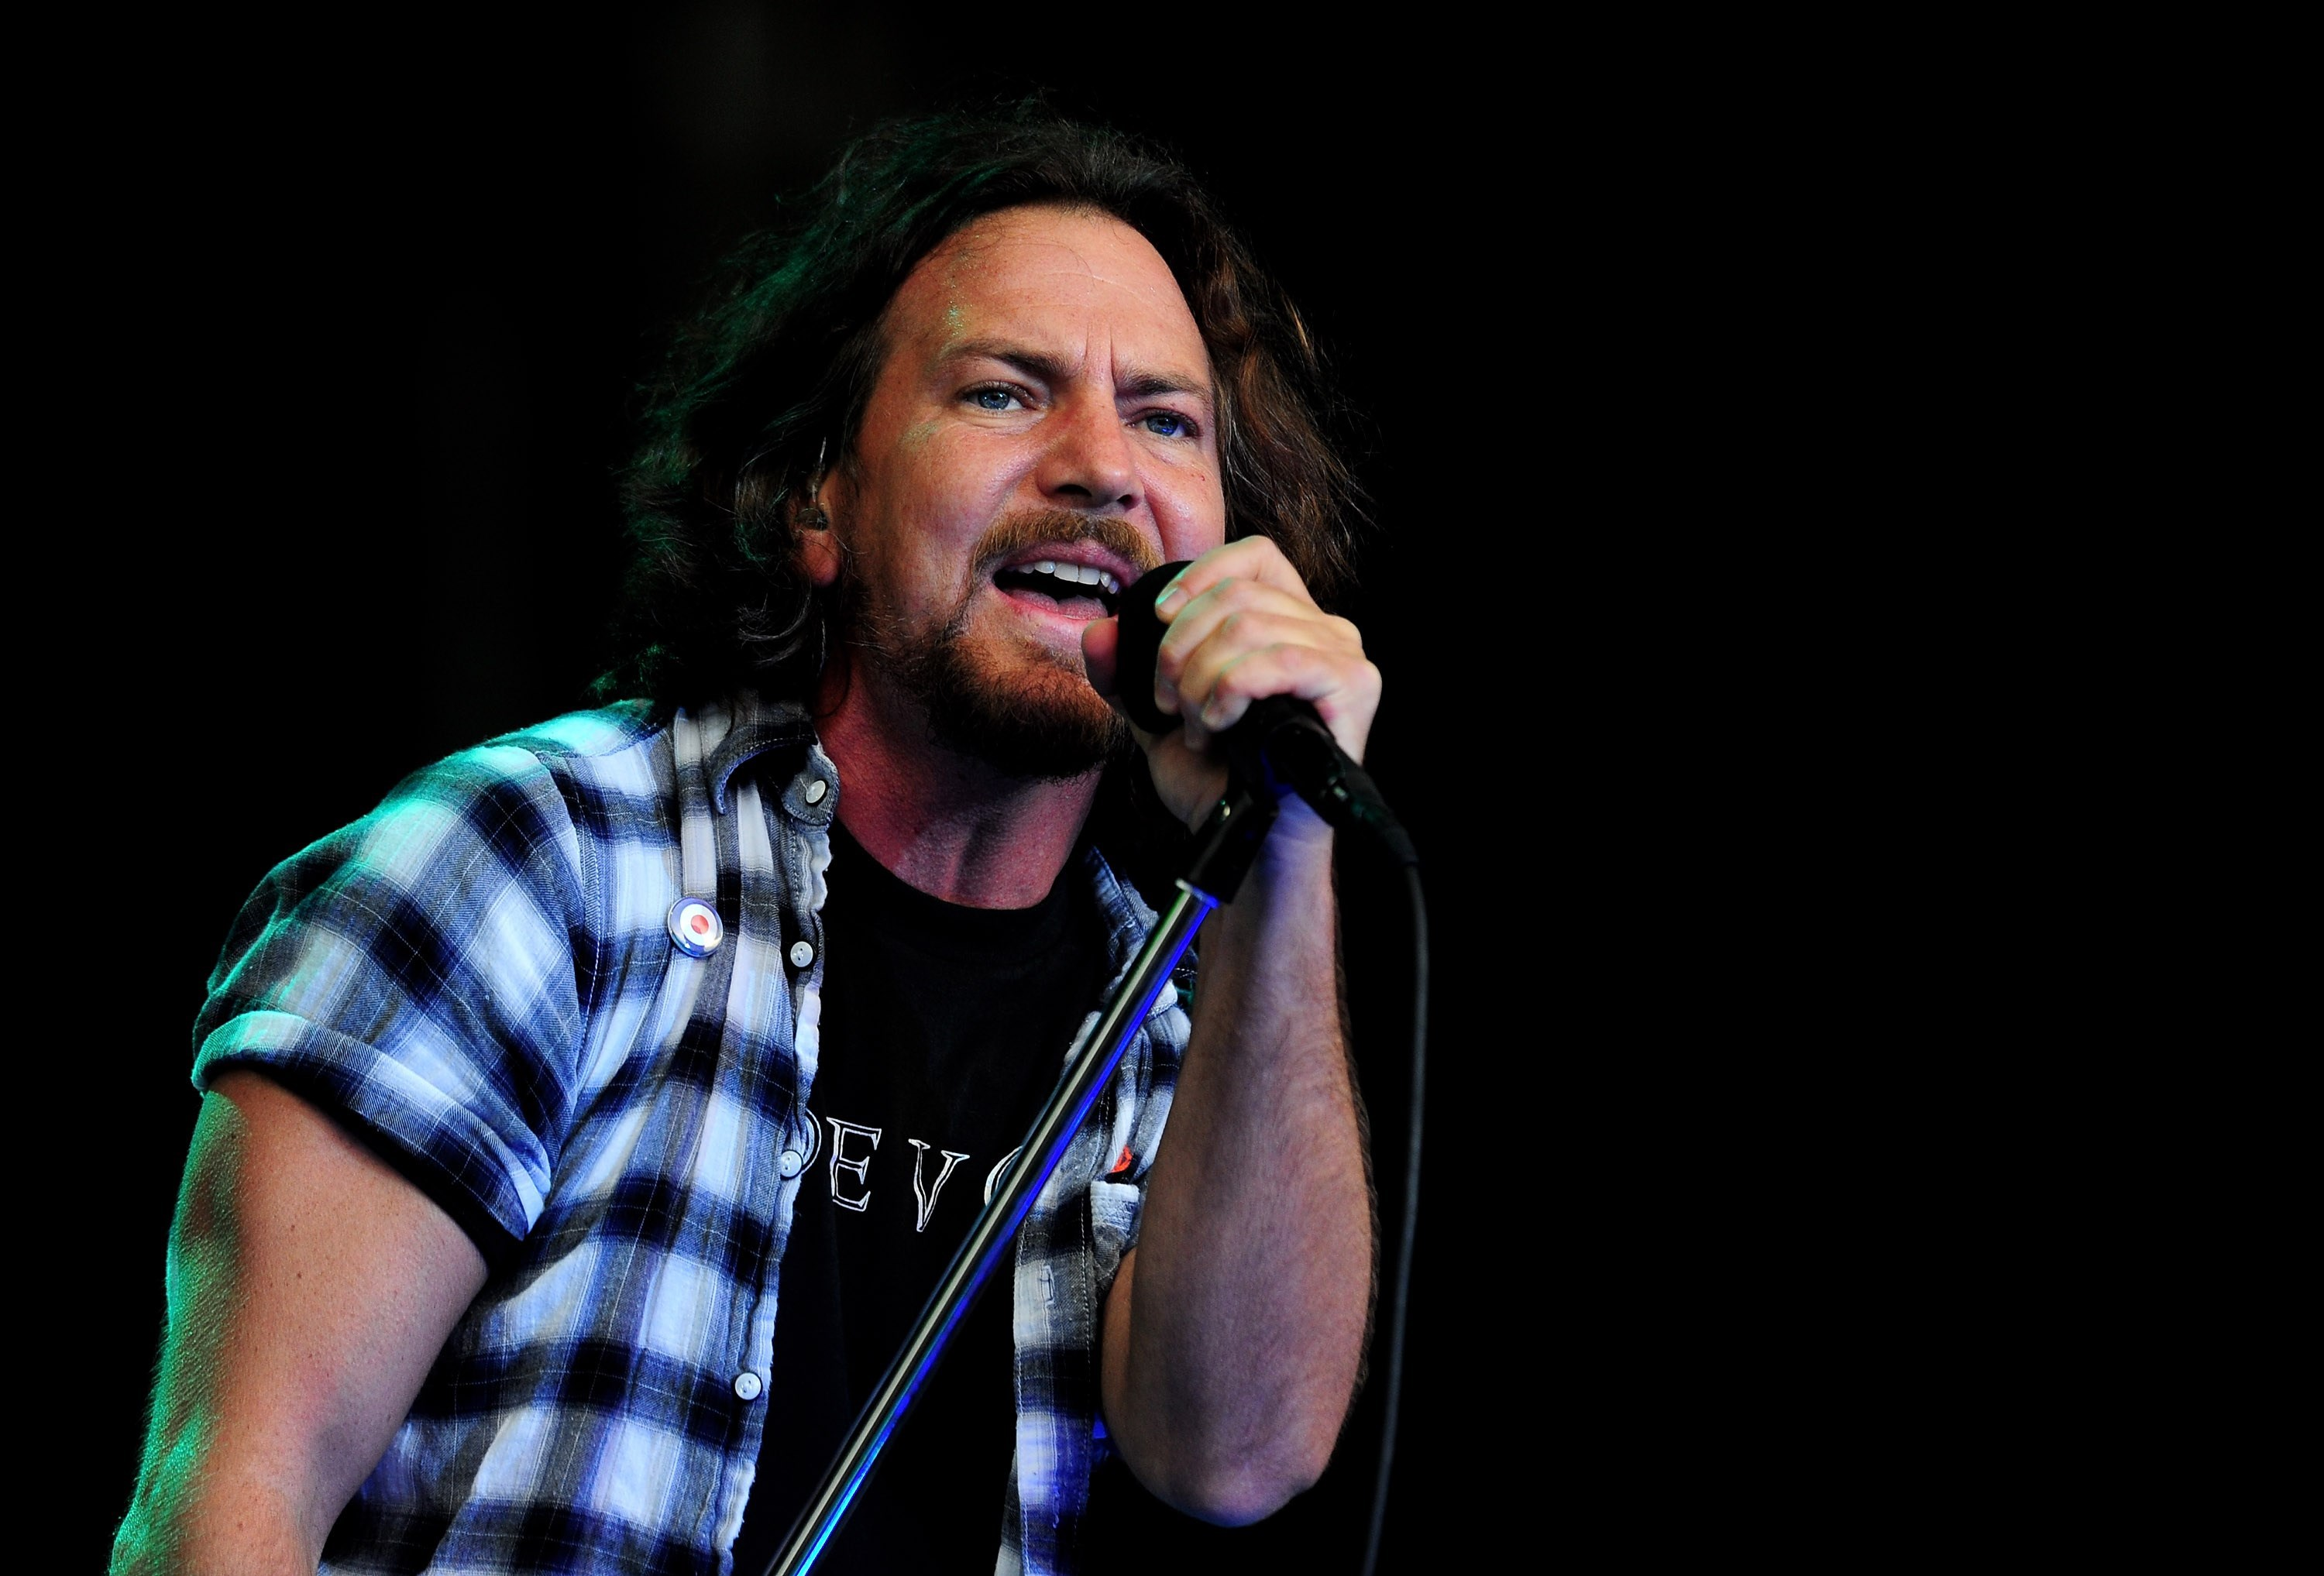 Money Wallpaper Hd Eddie Vedder Known People Famous People News And